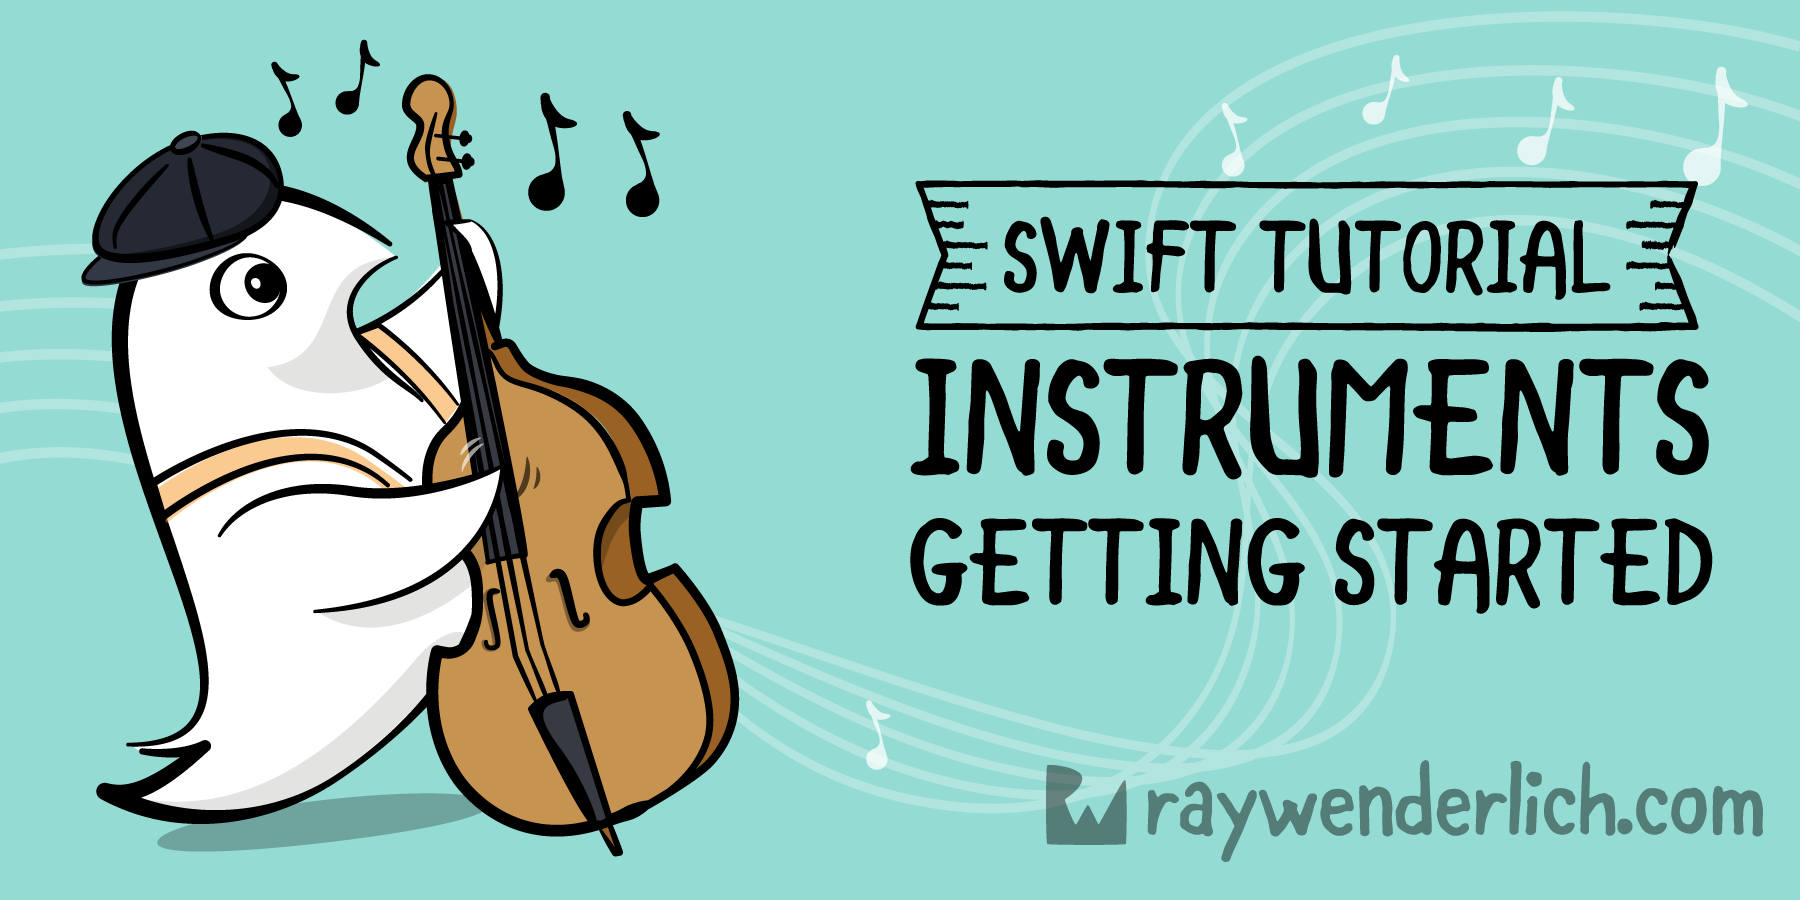 Instruments Tutorial with Swift: Getting Started